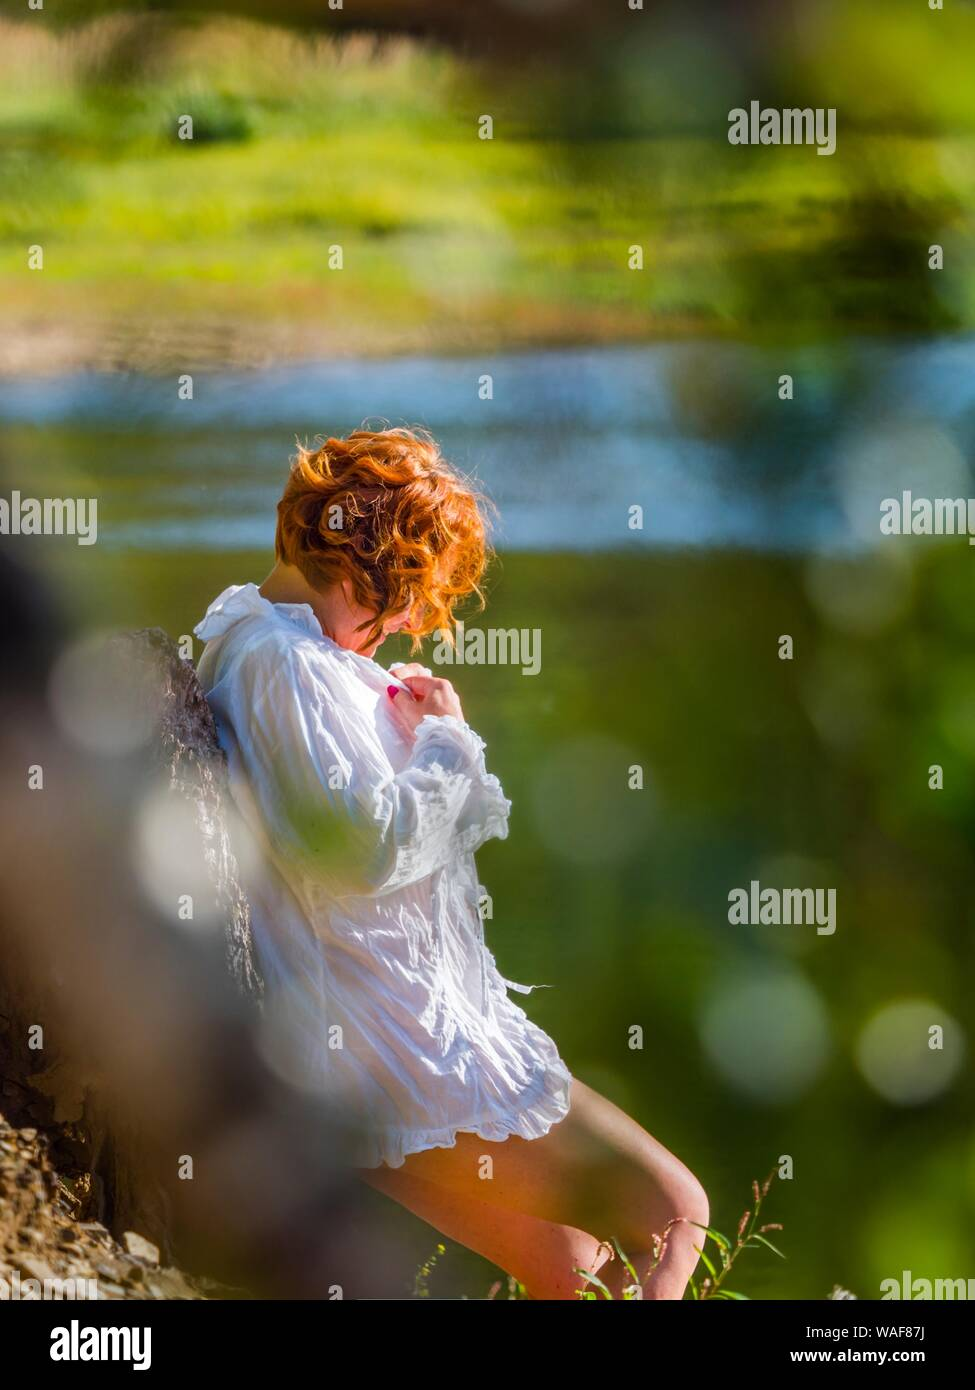 Attractive woman in nature enjoying sun sunlight sunlit isolated from background bokeh aka stalked by voyeur through tree branches leaves vegetation Stock Photo